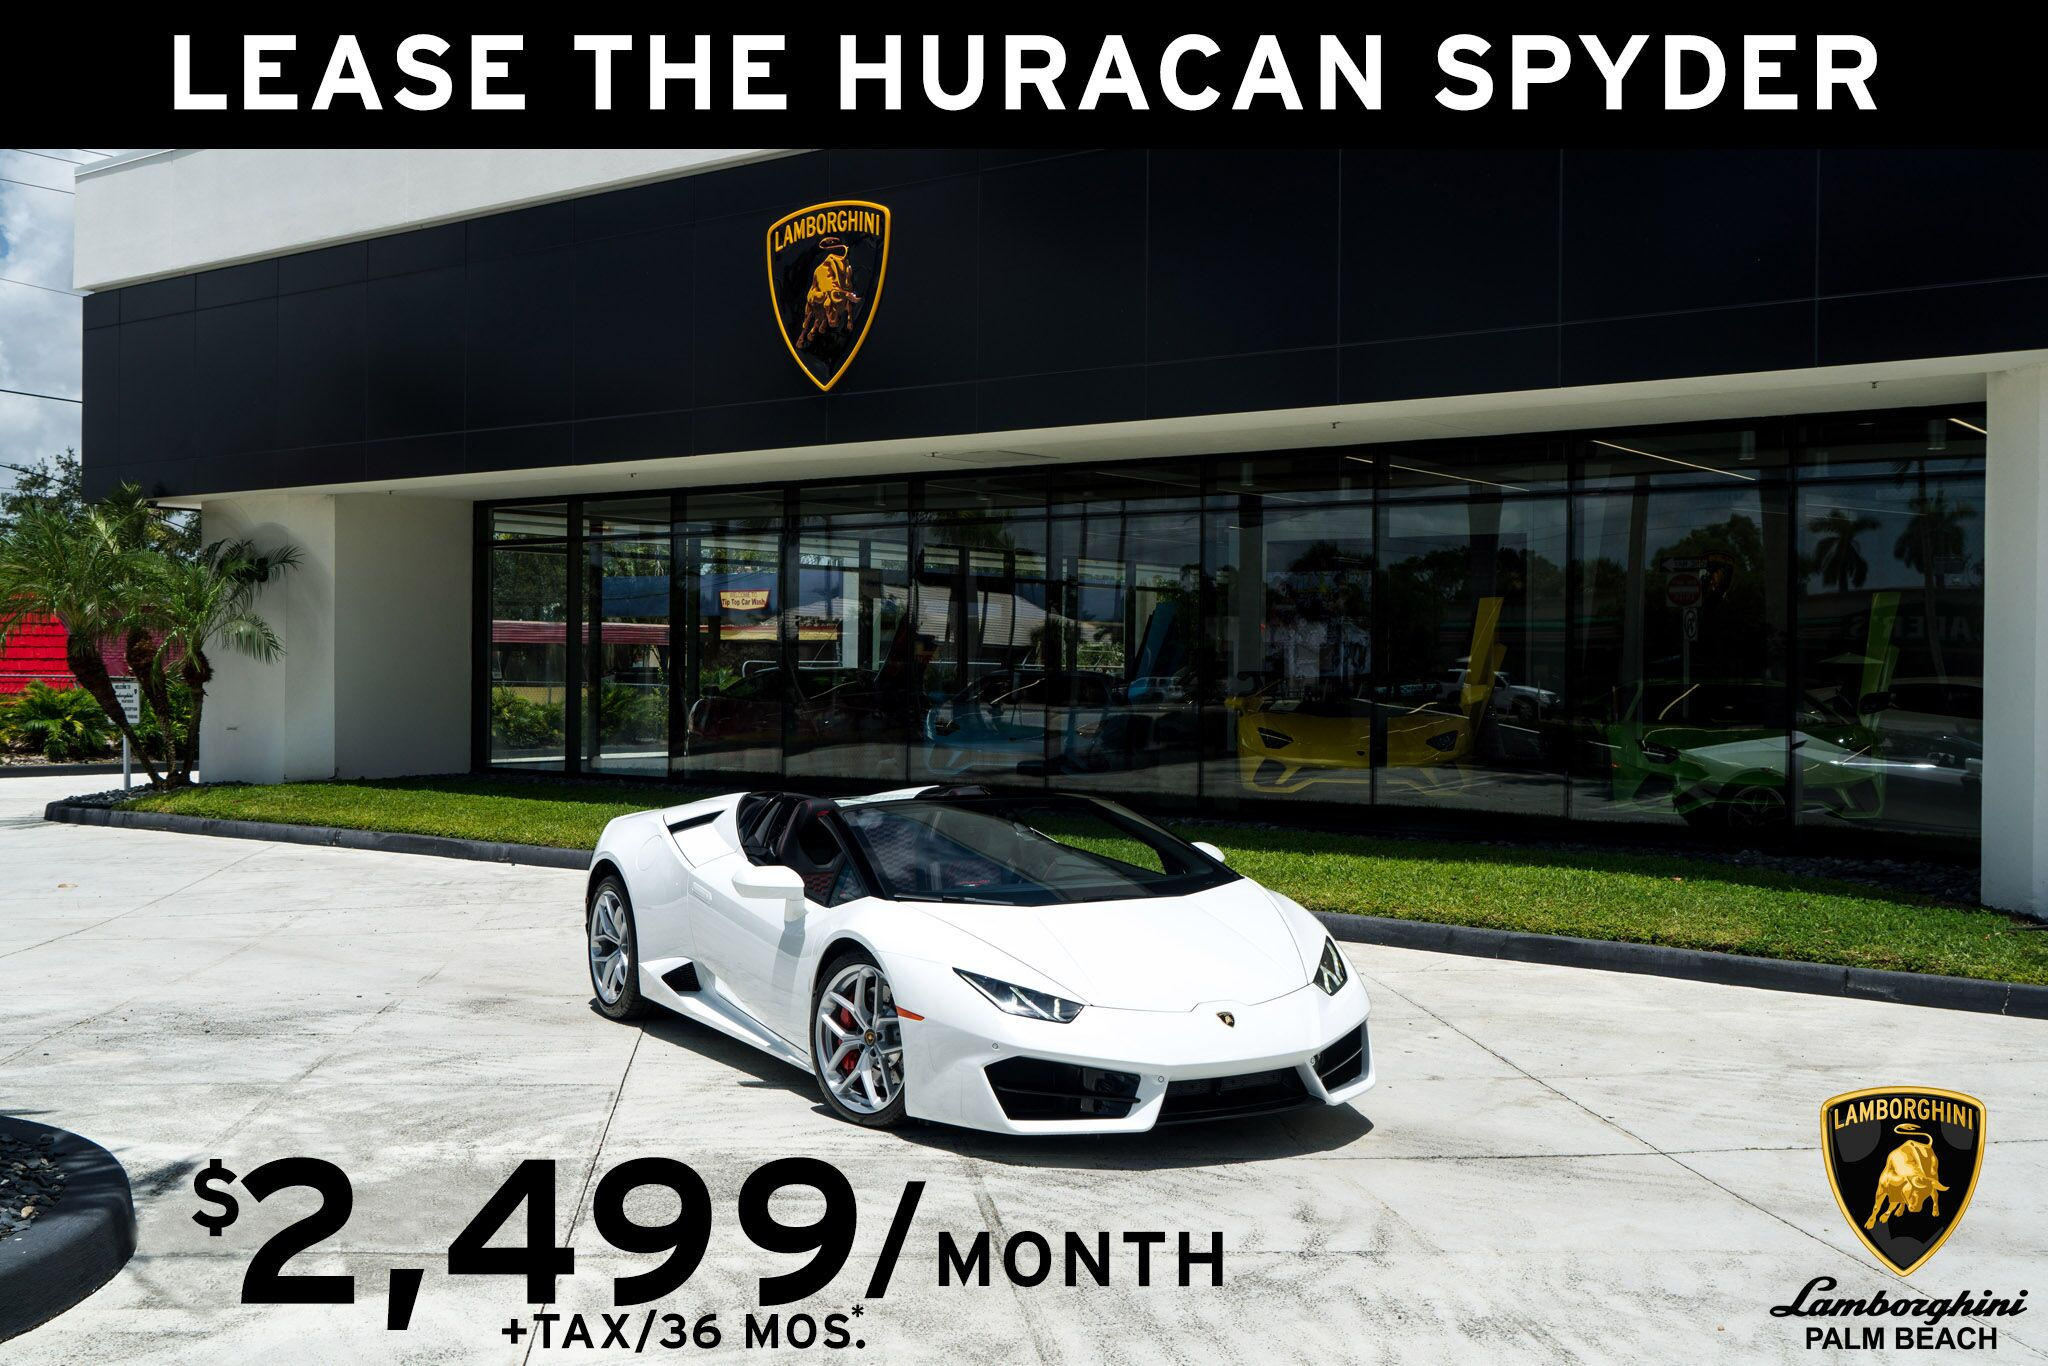 Available For Customers With Approved Credit. $19,999, Inceptions, Tax, And  Registration Due At Signing. Based On A 36 Month Term. 2,500 Miles/Year